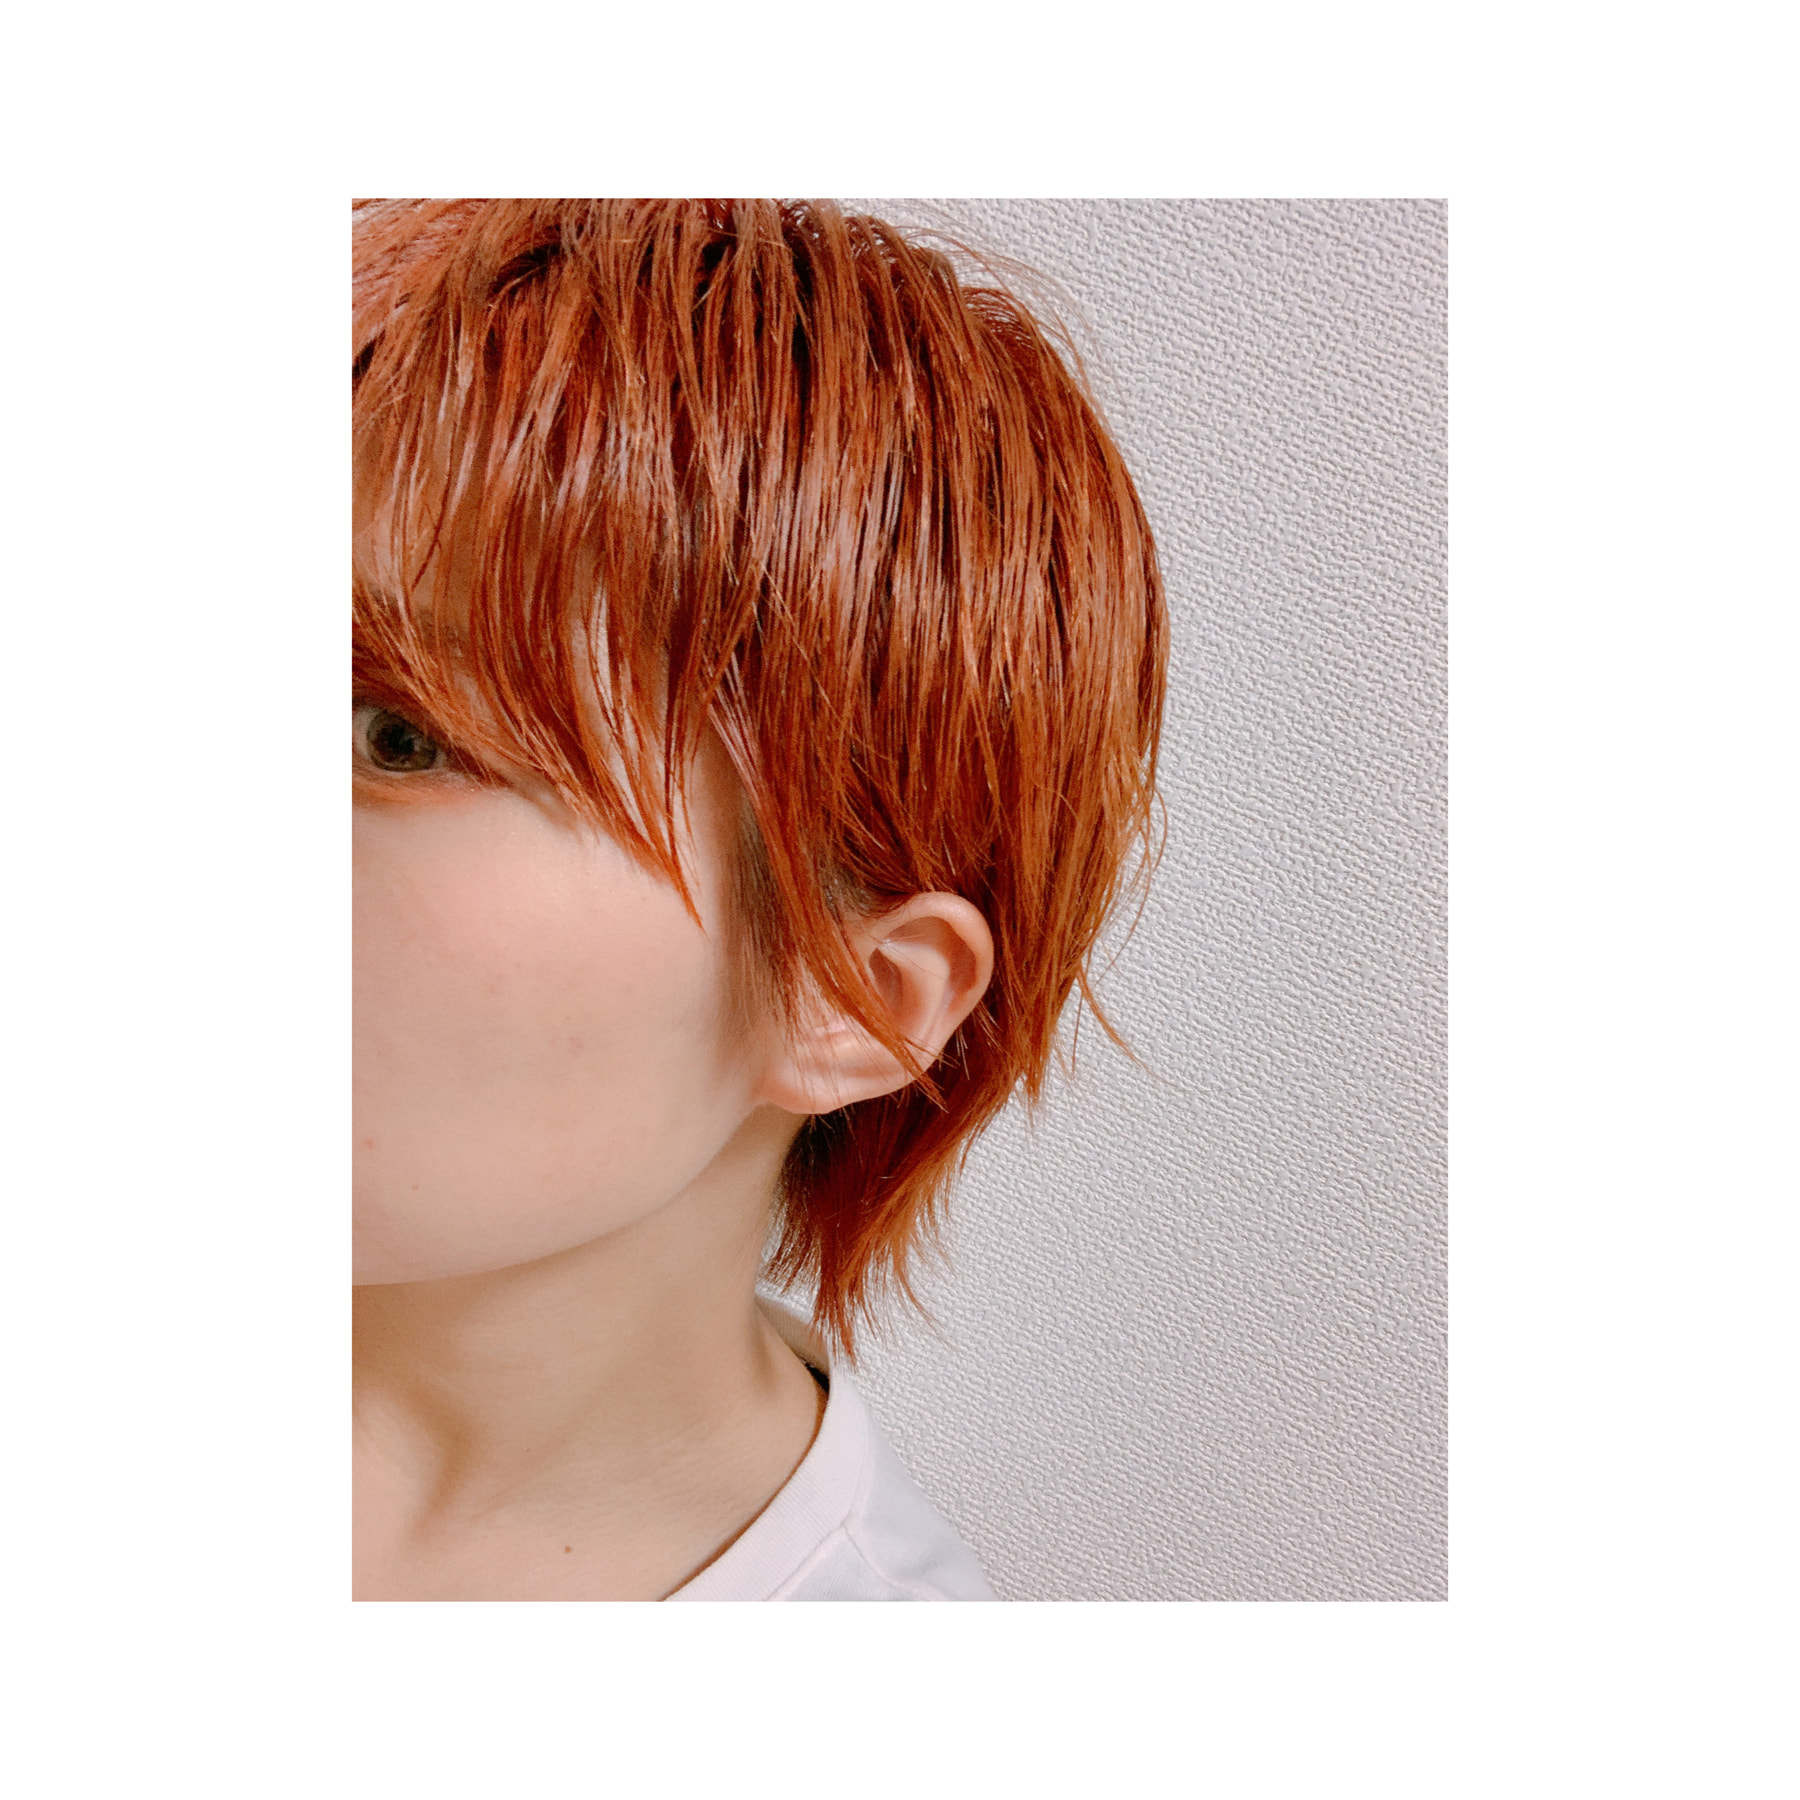 new color !!!